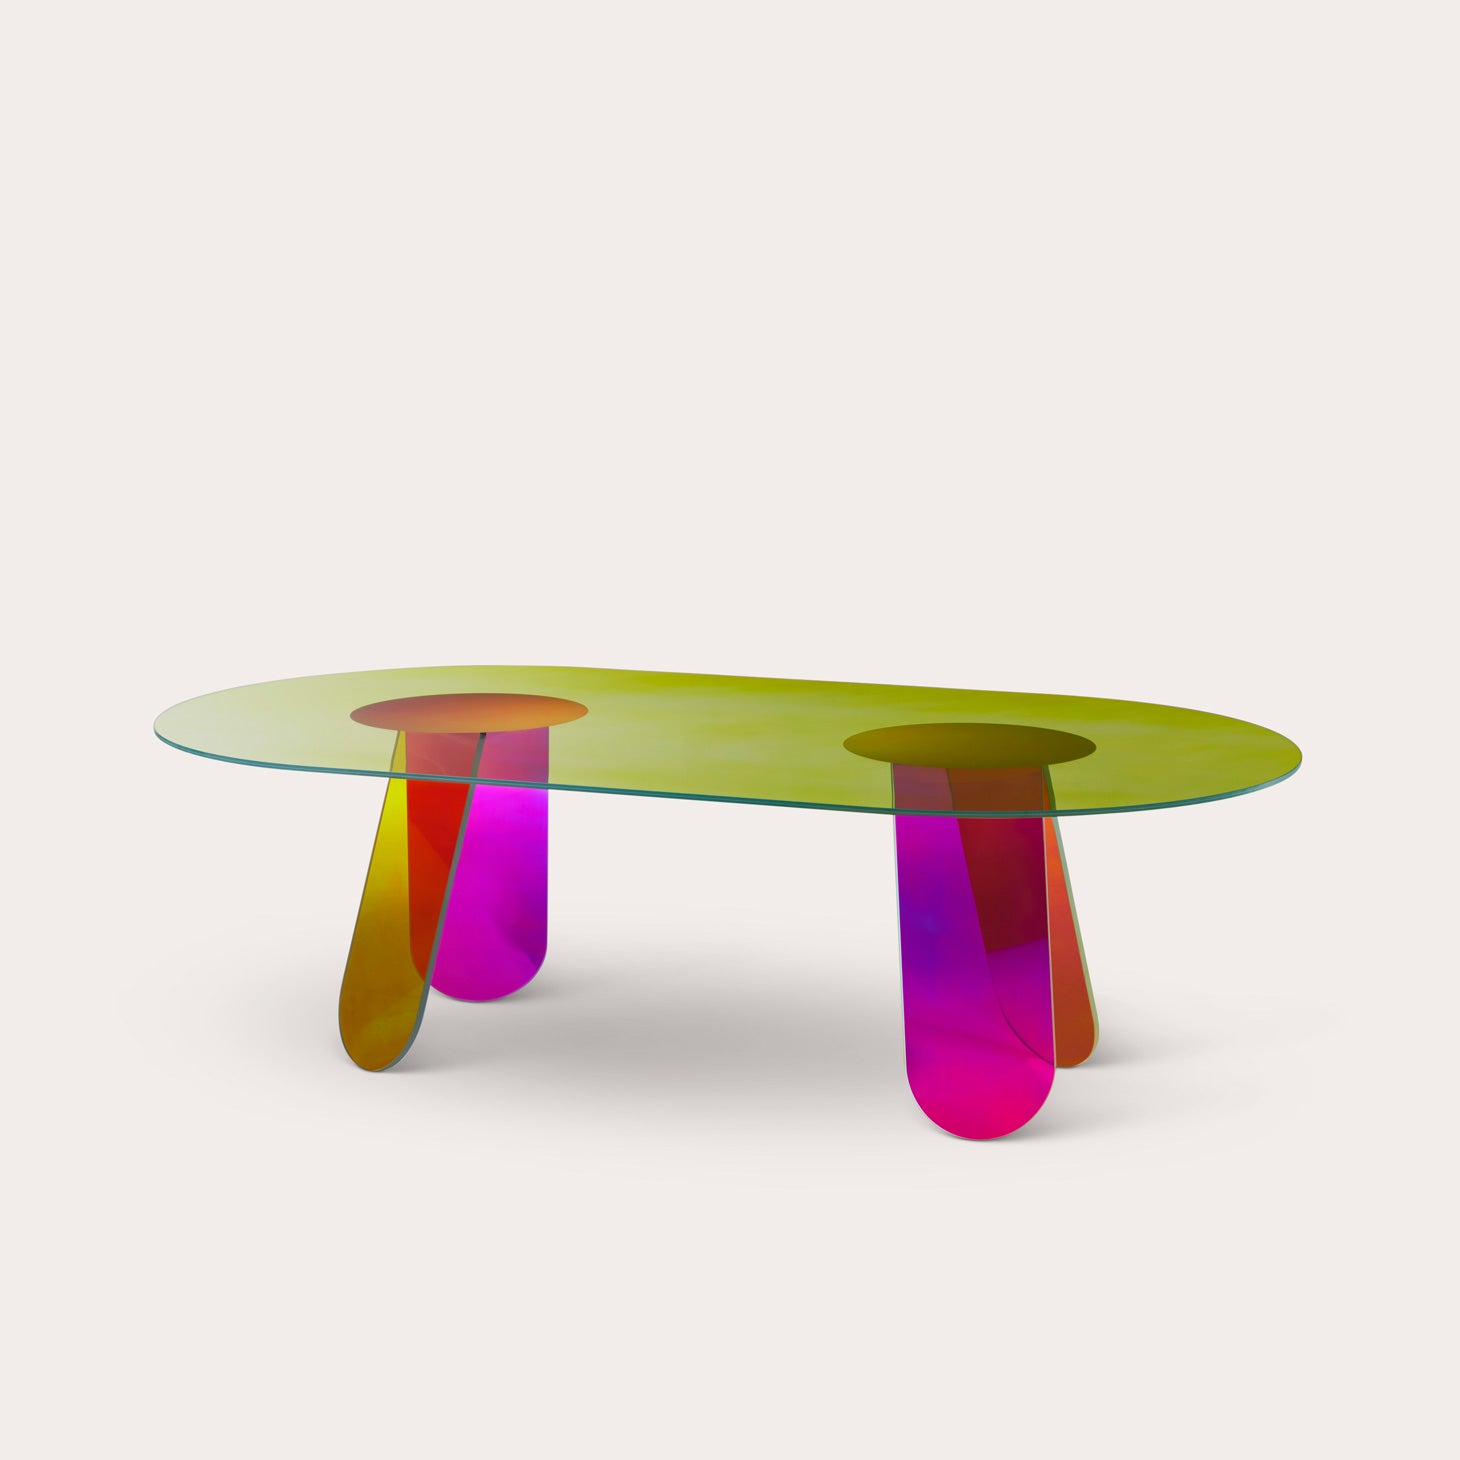 Shimmer Dining Table Tables Patricia Urquiola Designer Furniture Sku: 288-230-10270